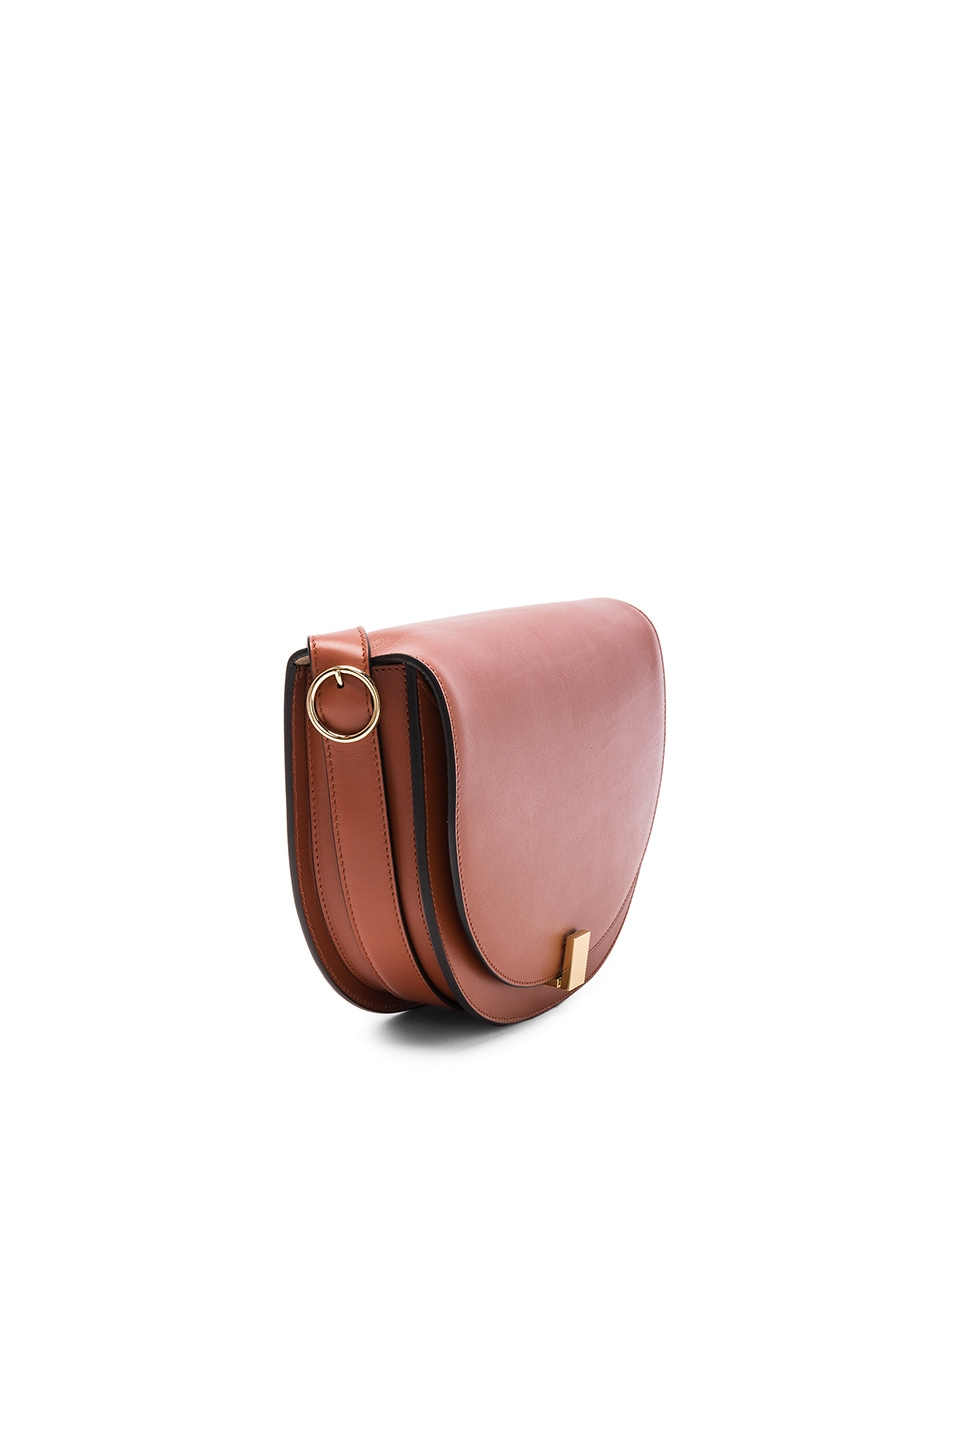 Image 3 of Victoria Beckham Half Moon Box Bag in Cognac